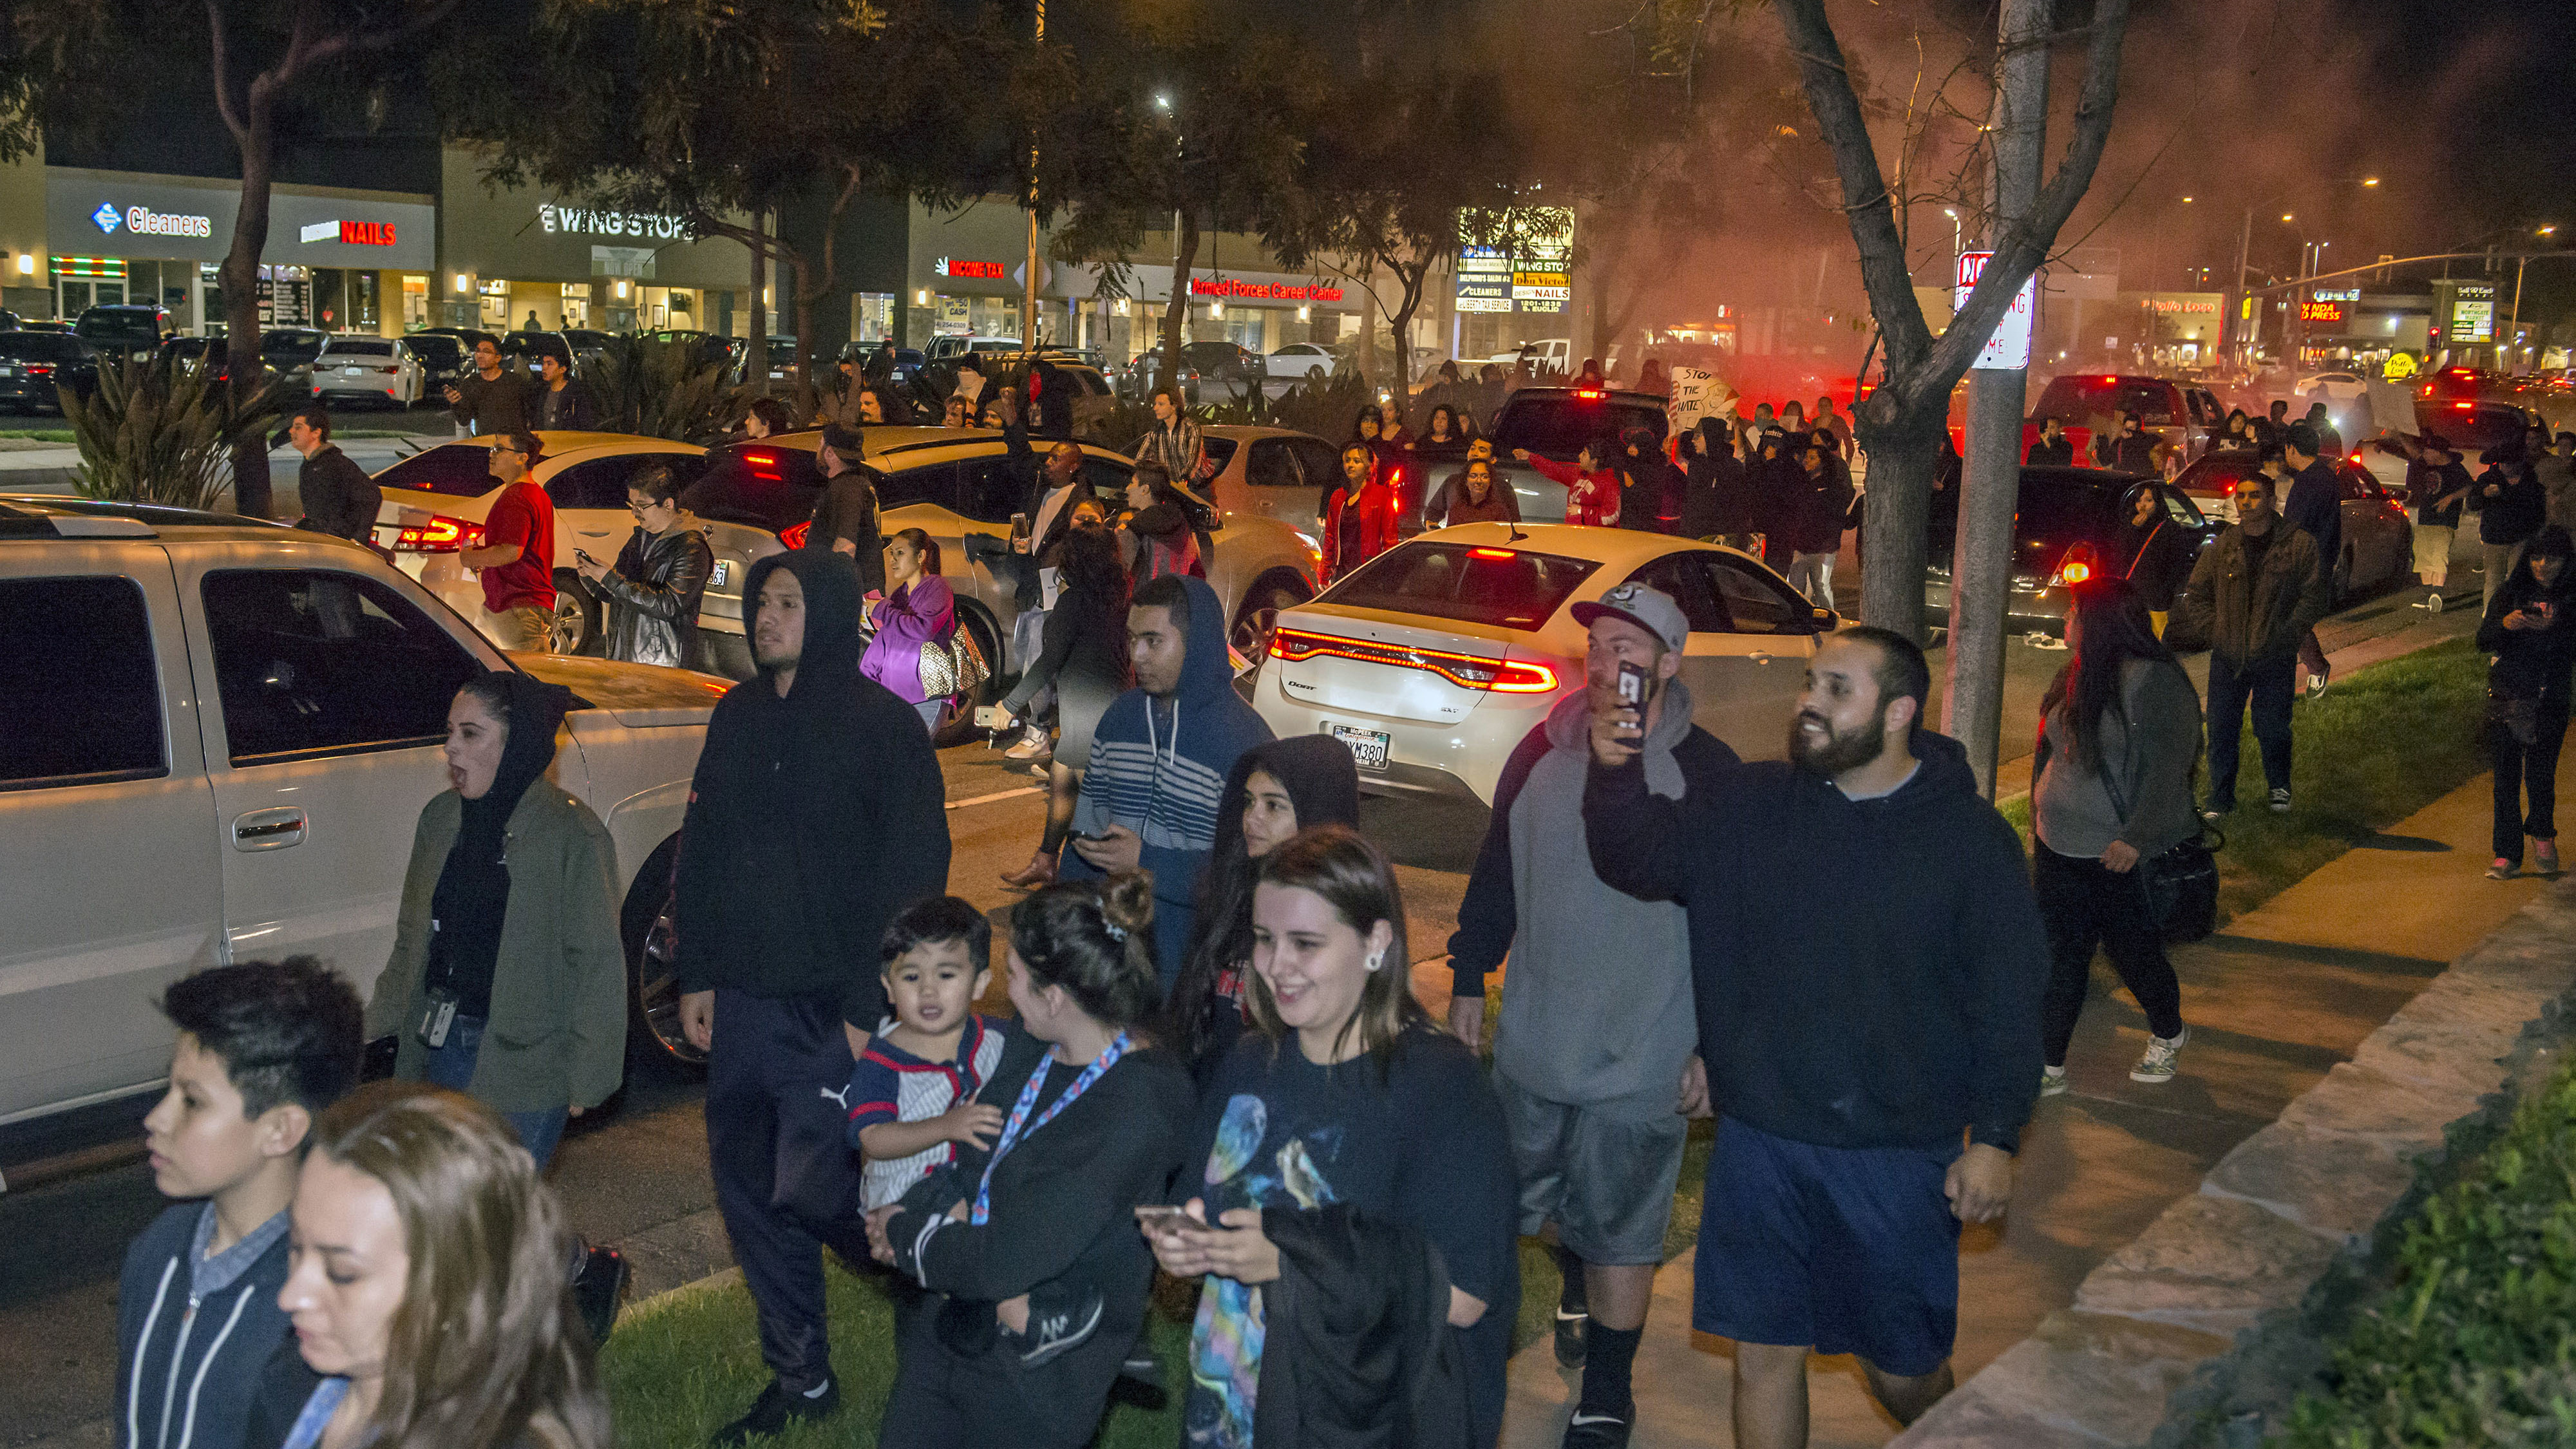 Hundreds marched through the streets of Anaheim. (AAP)